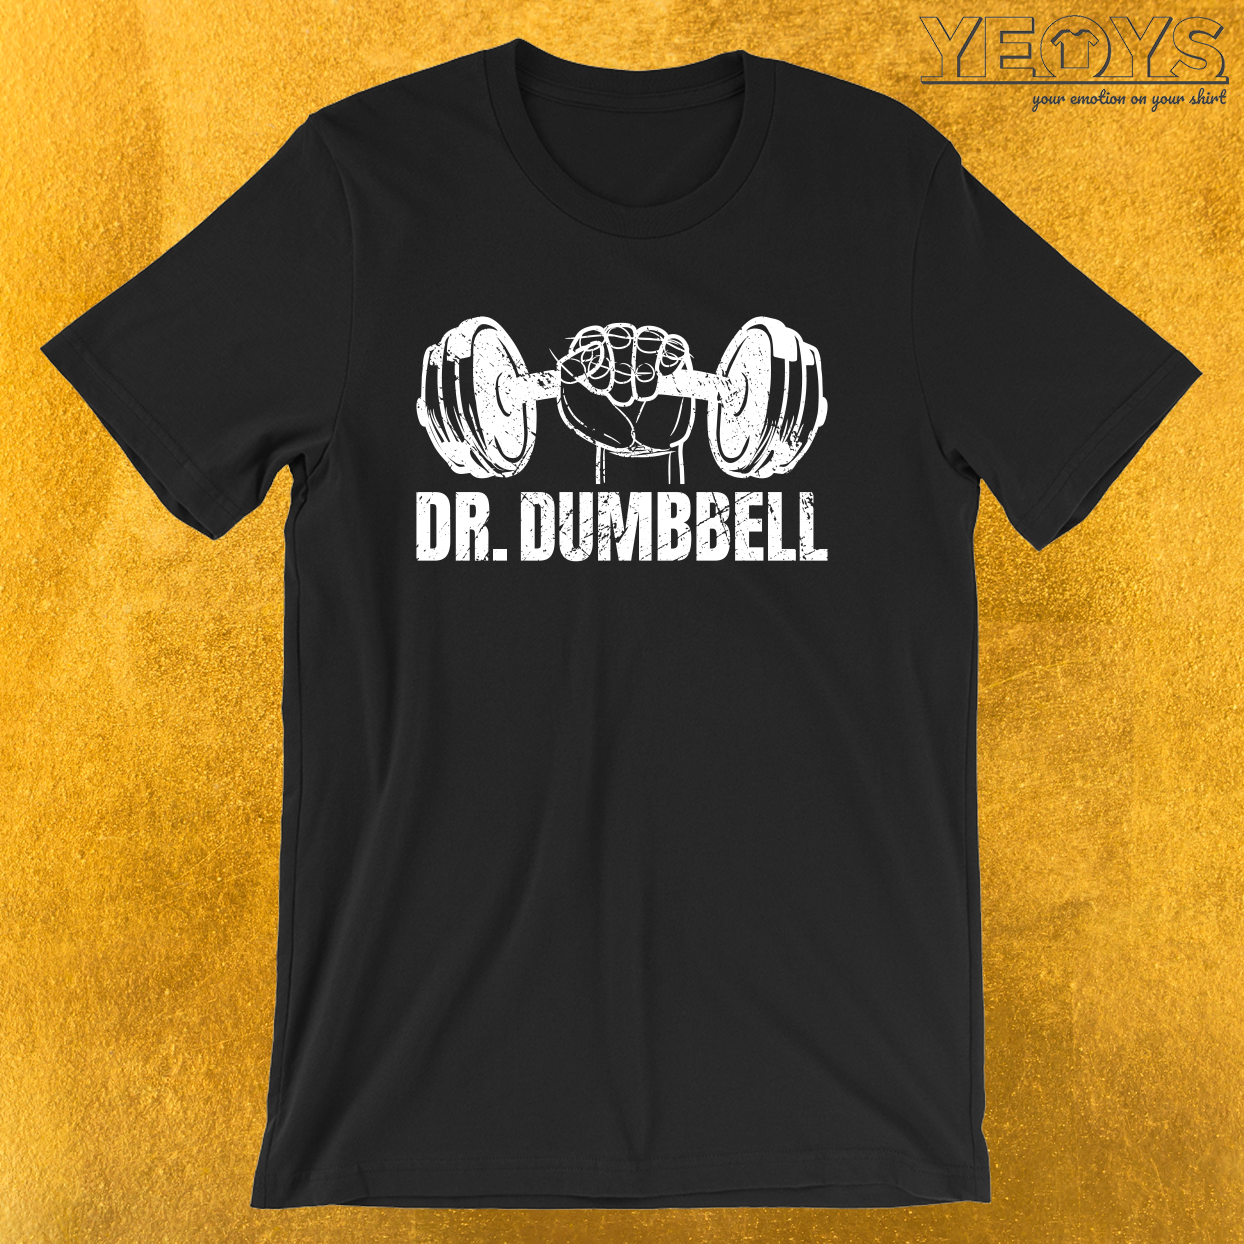 Weightlifting – Dr. Dumbbell Tee